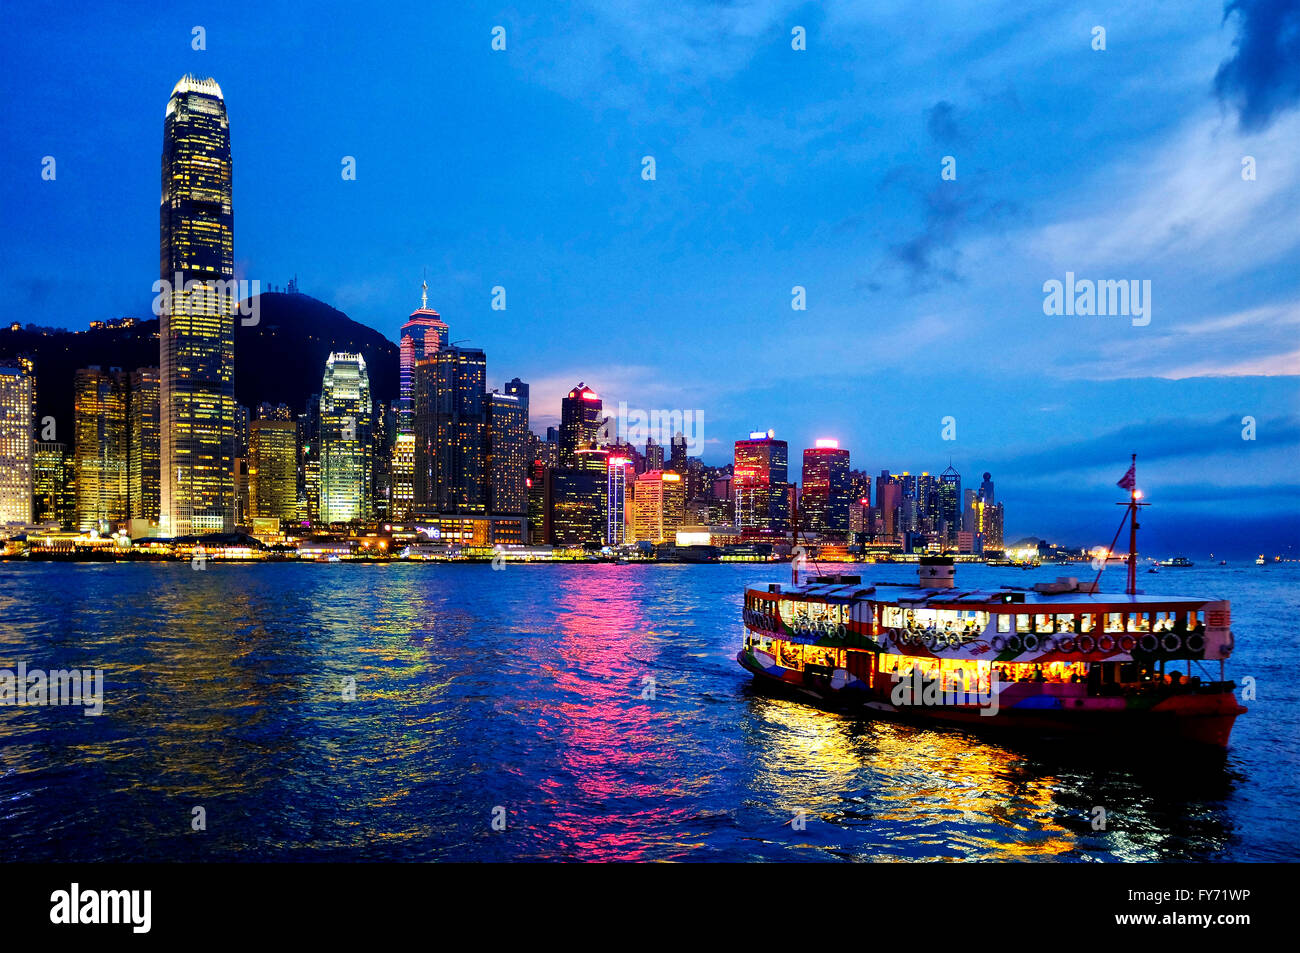 Une star ferry dans le port de Victoria, Hong Kong, Chine Photo Stock